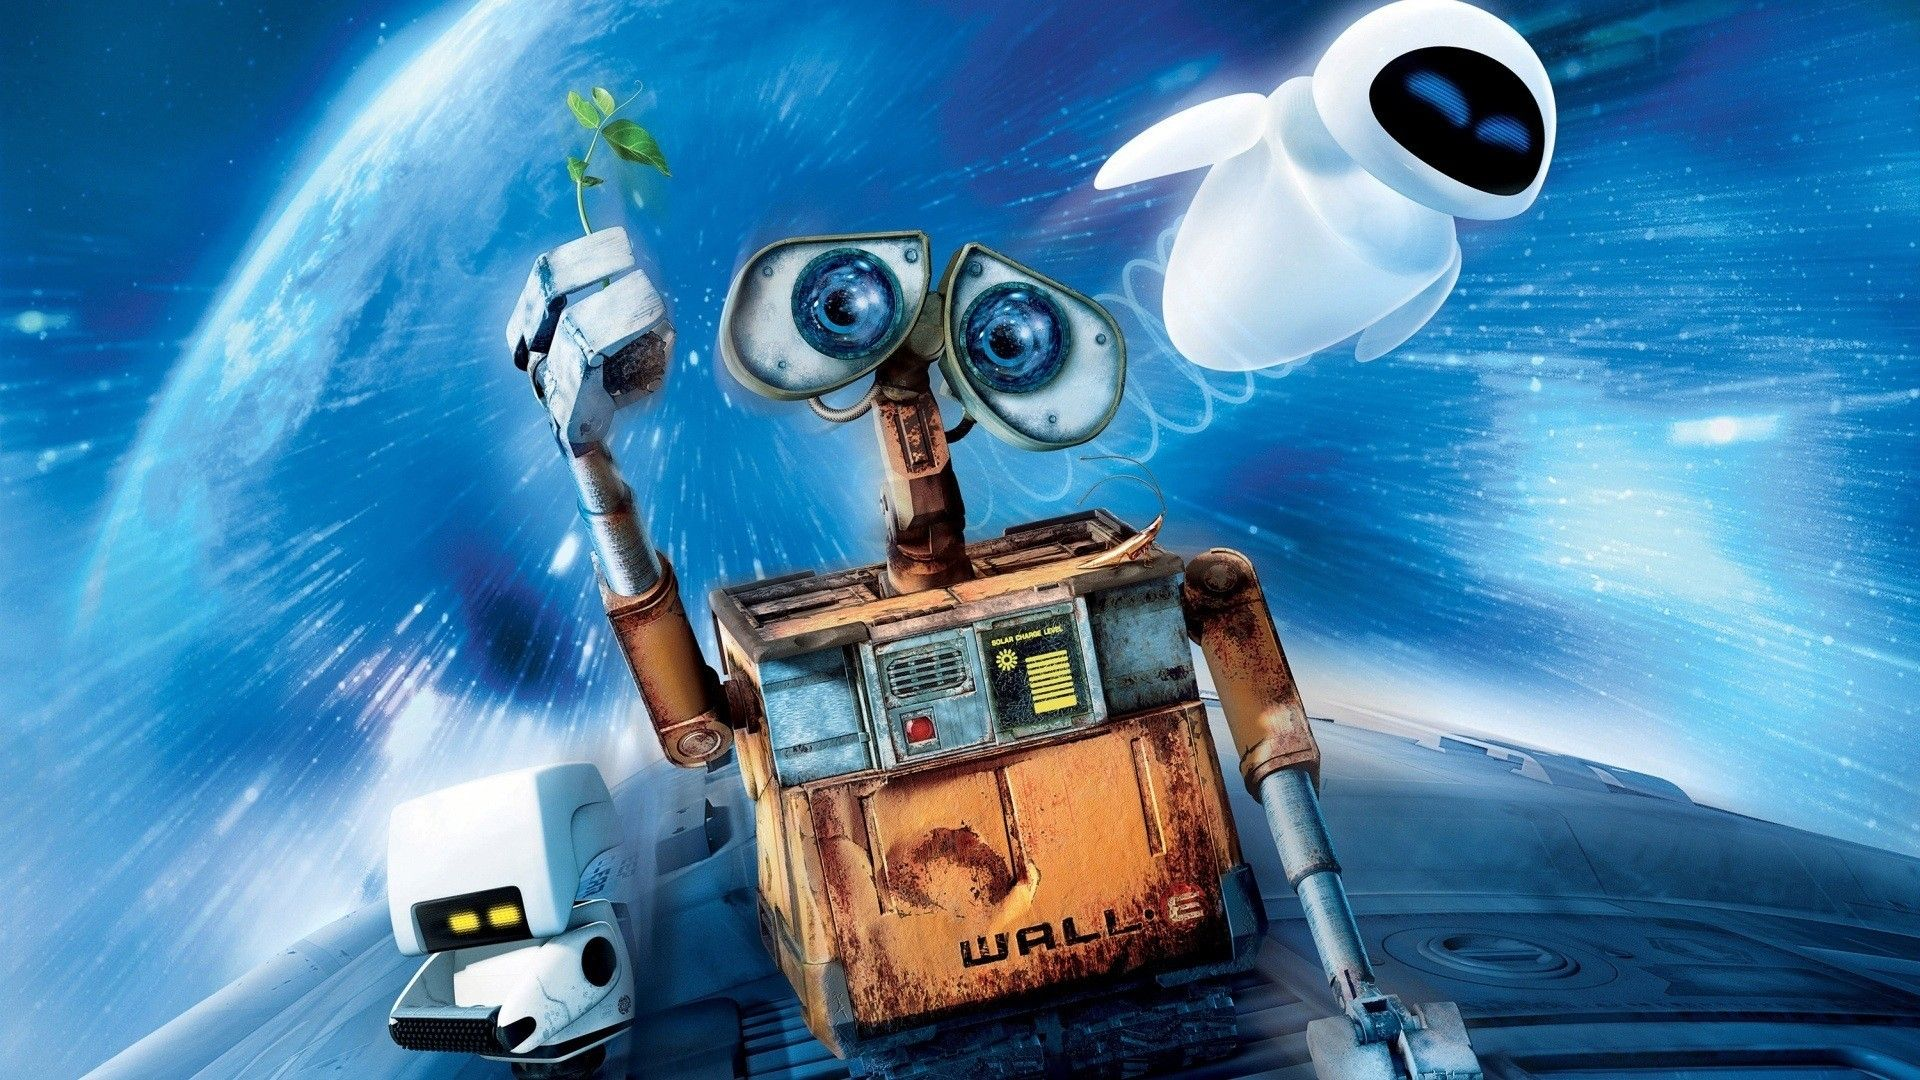 walle and eve wallpapers free download